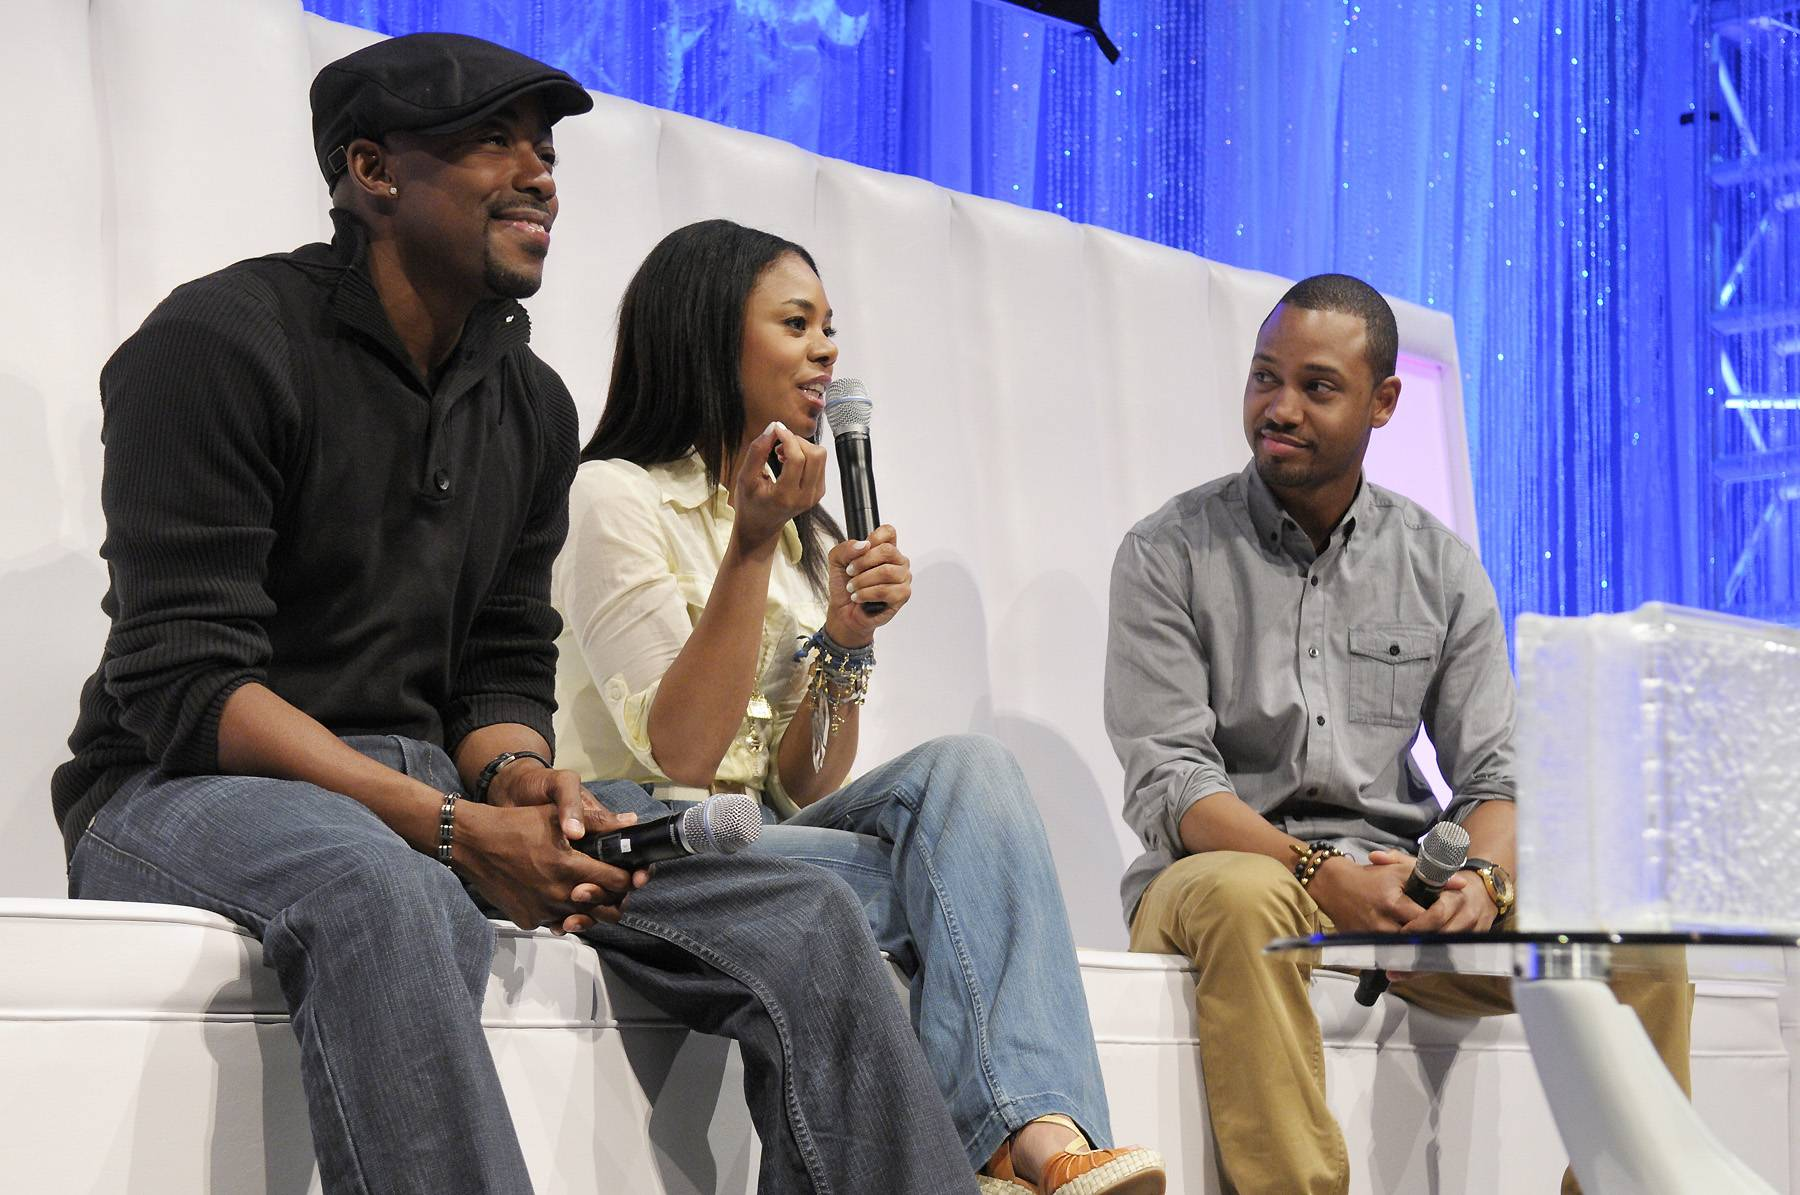 Words of Wisdom - In the first session, actress Regina Hall and movie producer and director Will Packer shared with the Dreamers their inspirational stories about how they broke into Hollywood and talked about their new movie, Think Like a Man, out April 20.  (Photo: Phelan Ebenhack)